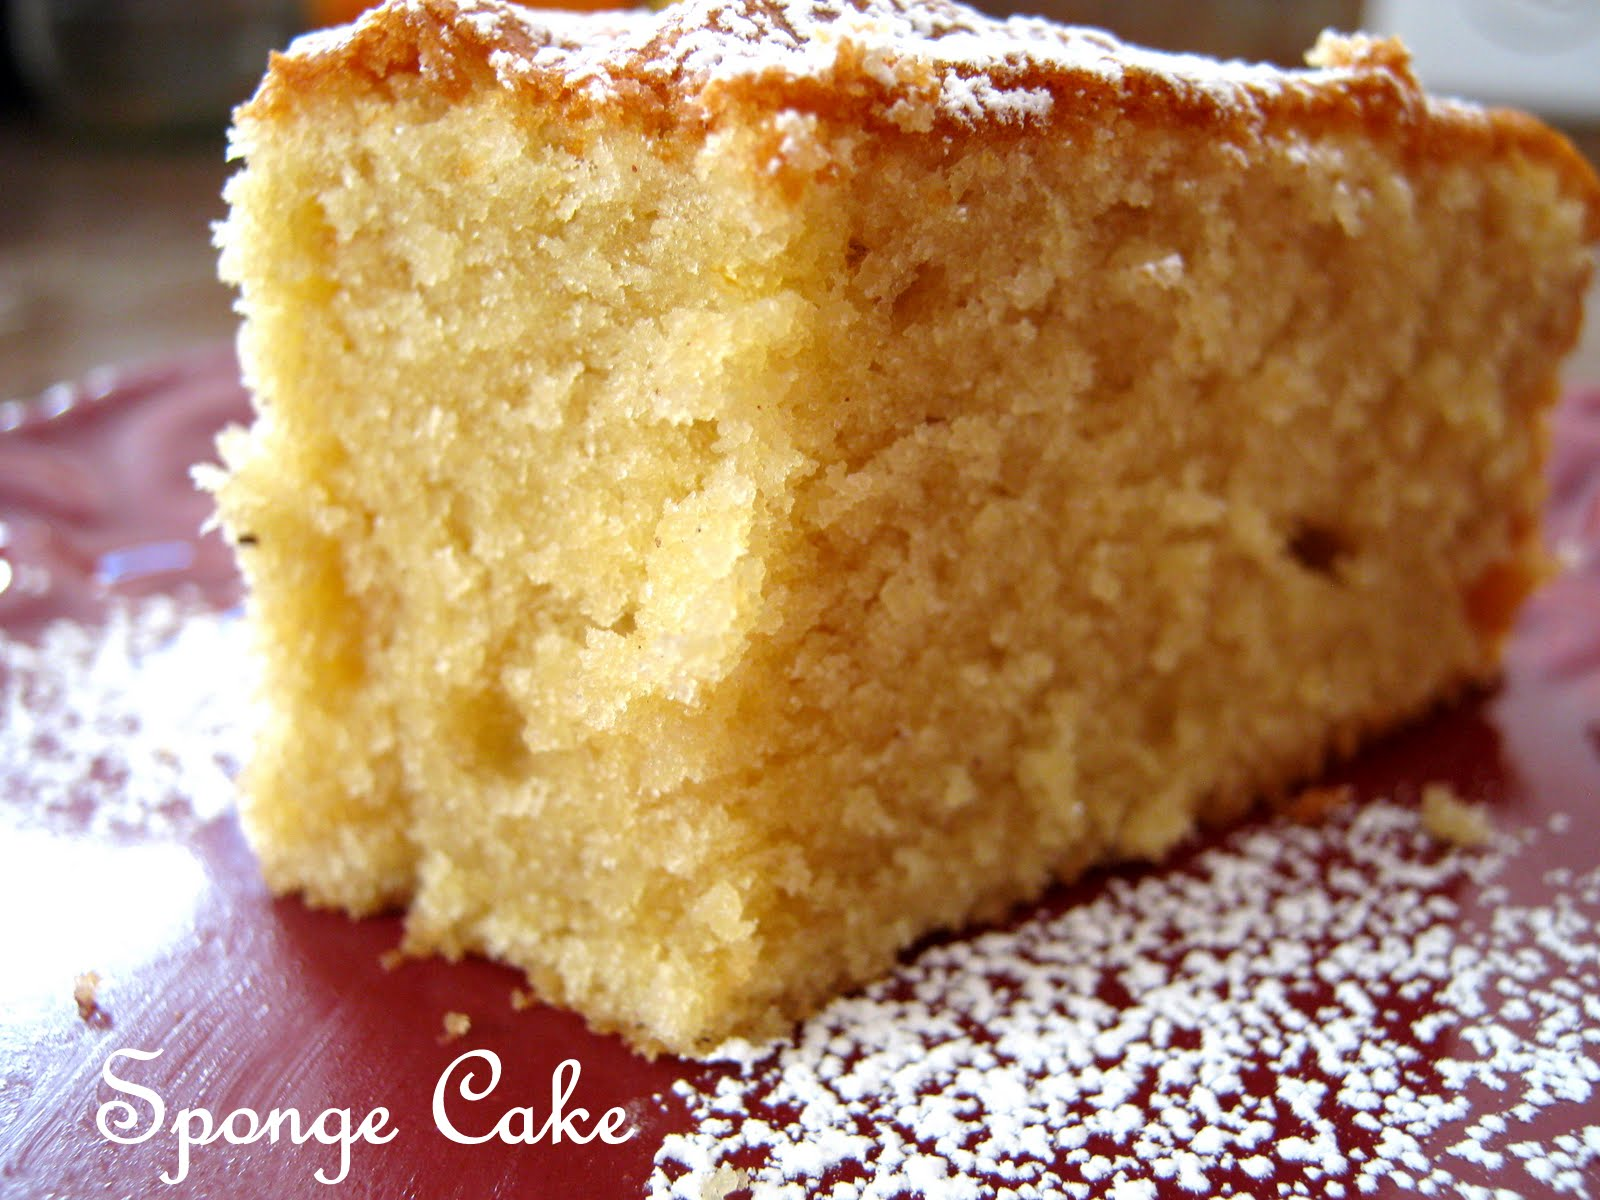 Sponge Cake Recipe In Square Cake Tin